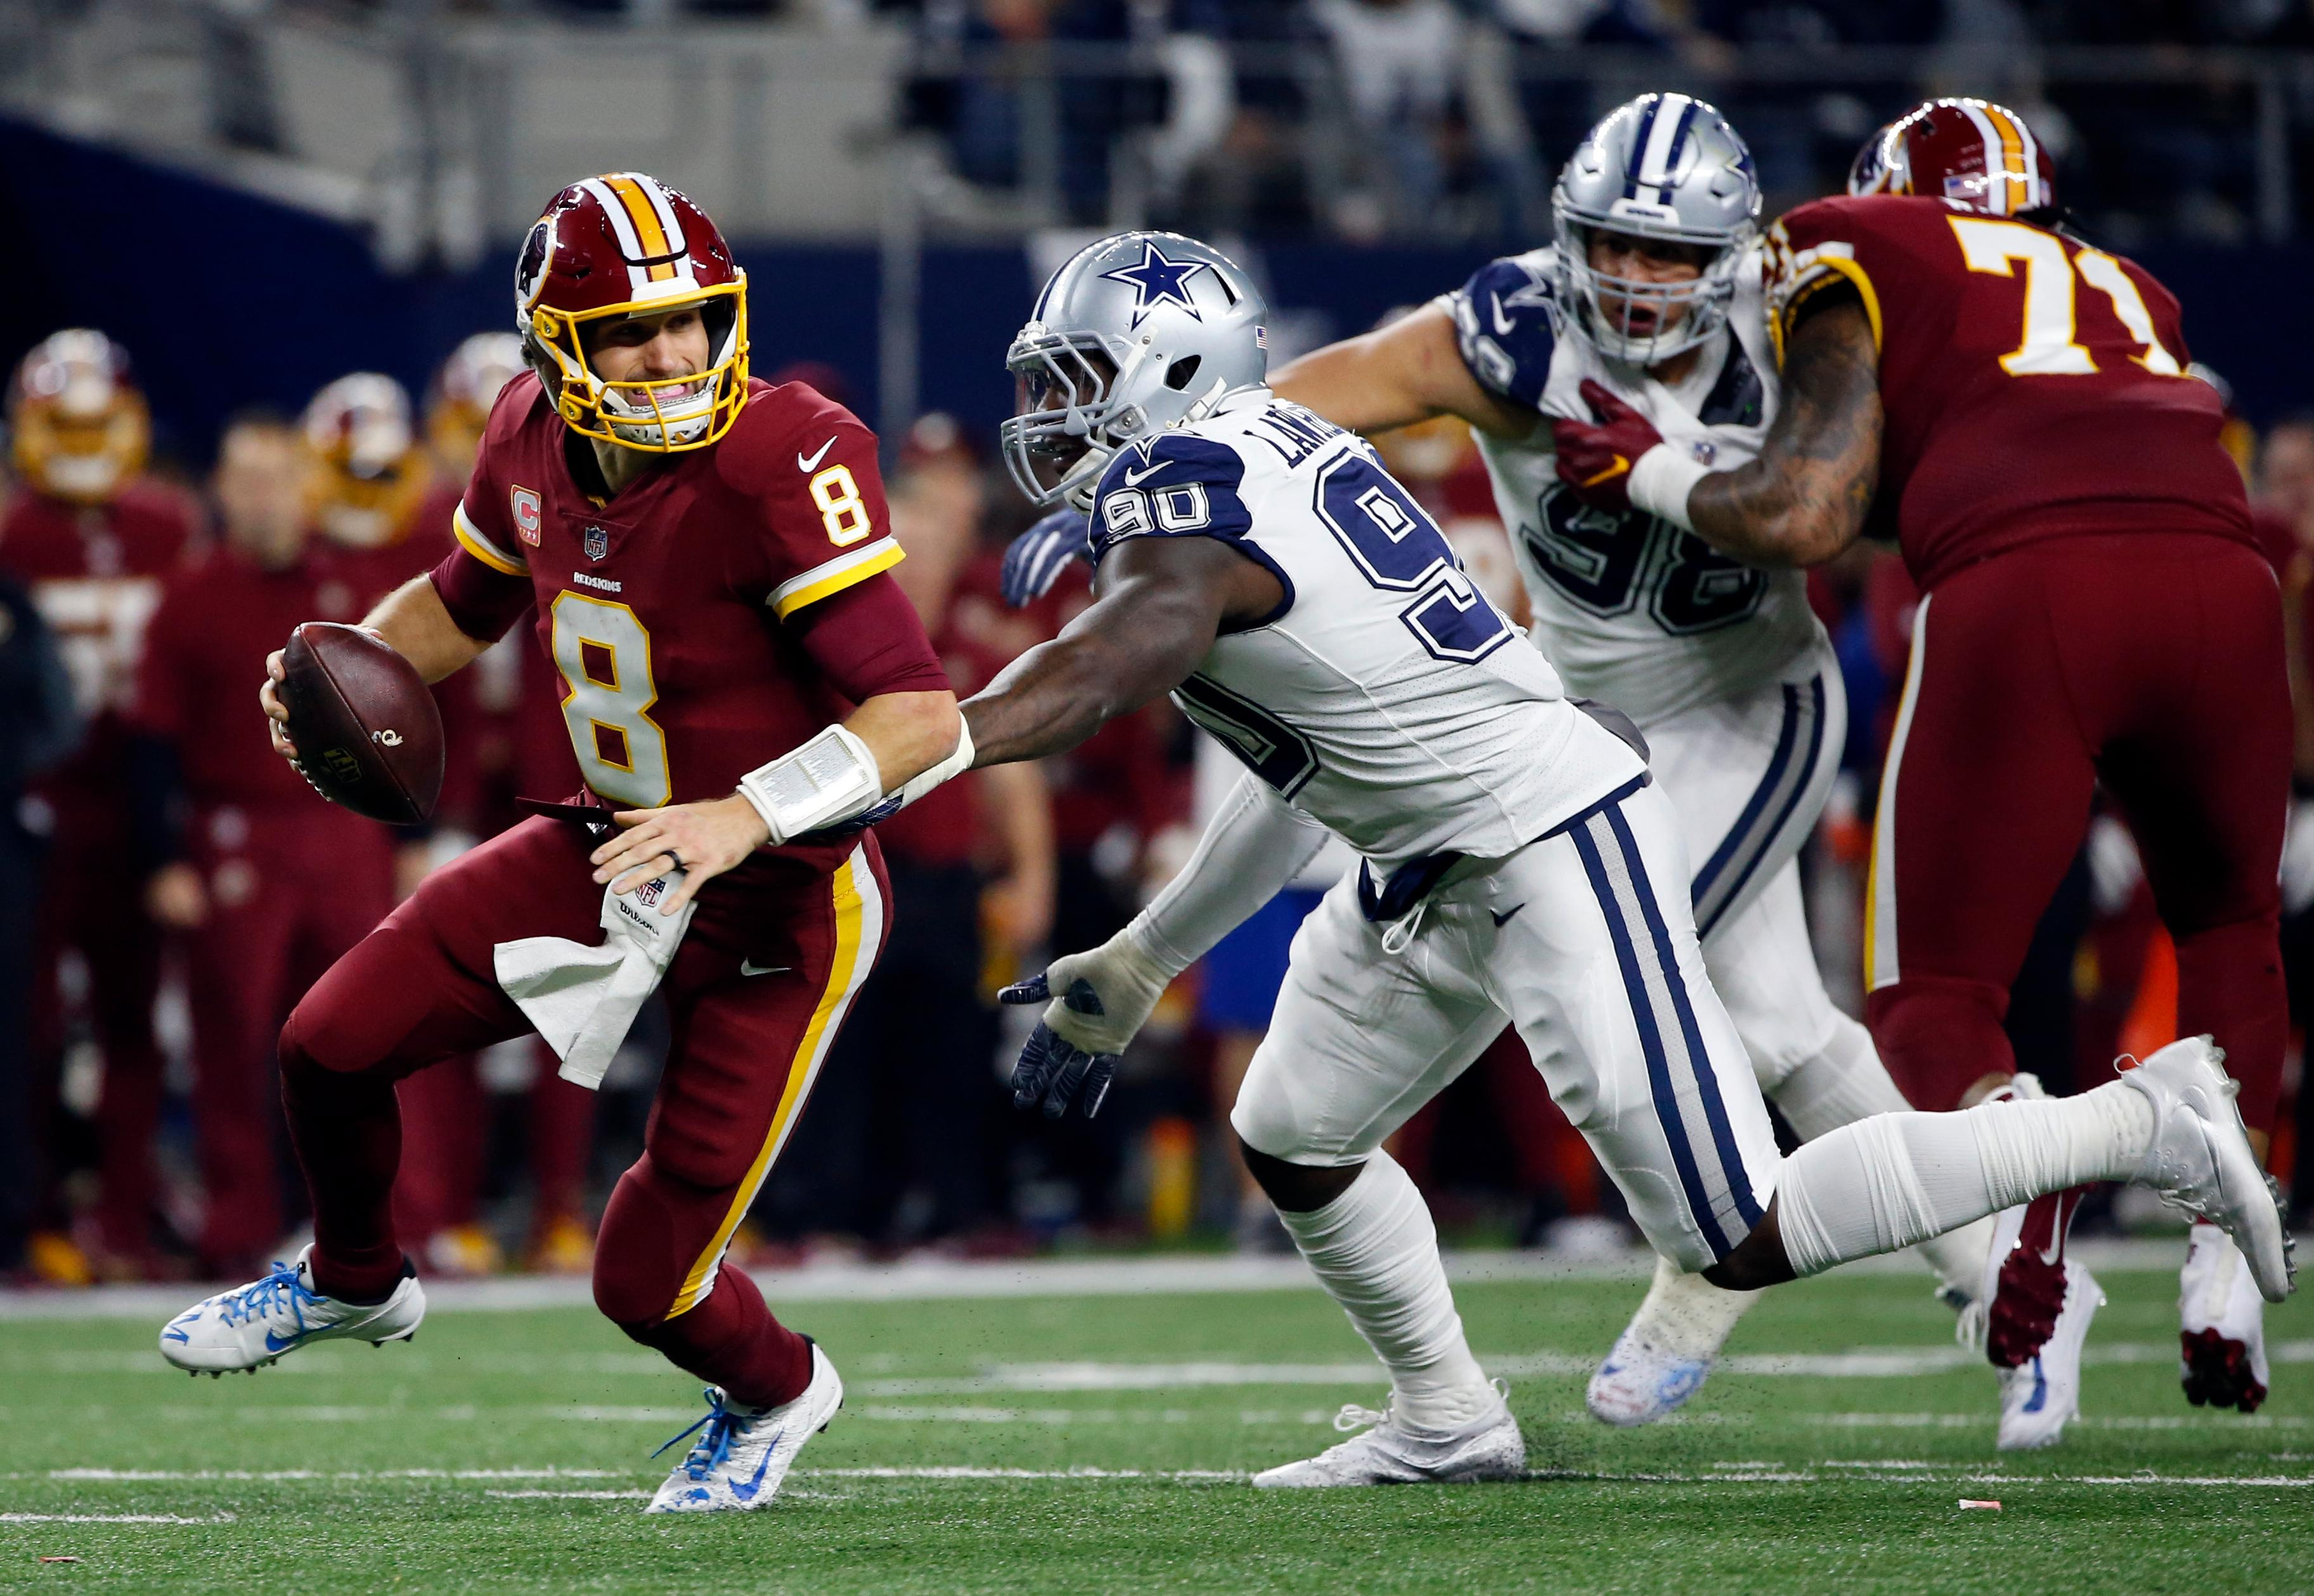 Washington Redskins quarterback Kirk Cousins (8) scrambles out of the pocket escaping pressure from Dallas Cowboys defensive end DeMarcus Lawrence in the first half of an NFL football game, Thursday, Nov. 30, 2017, in Arlington, Texas. (AP Photo/Ron Jenkins)